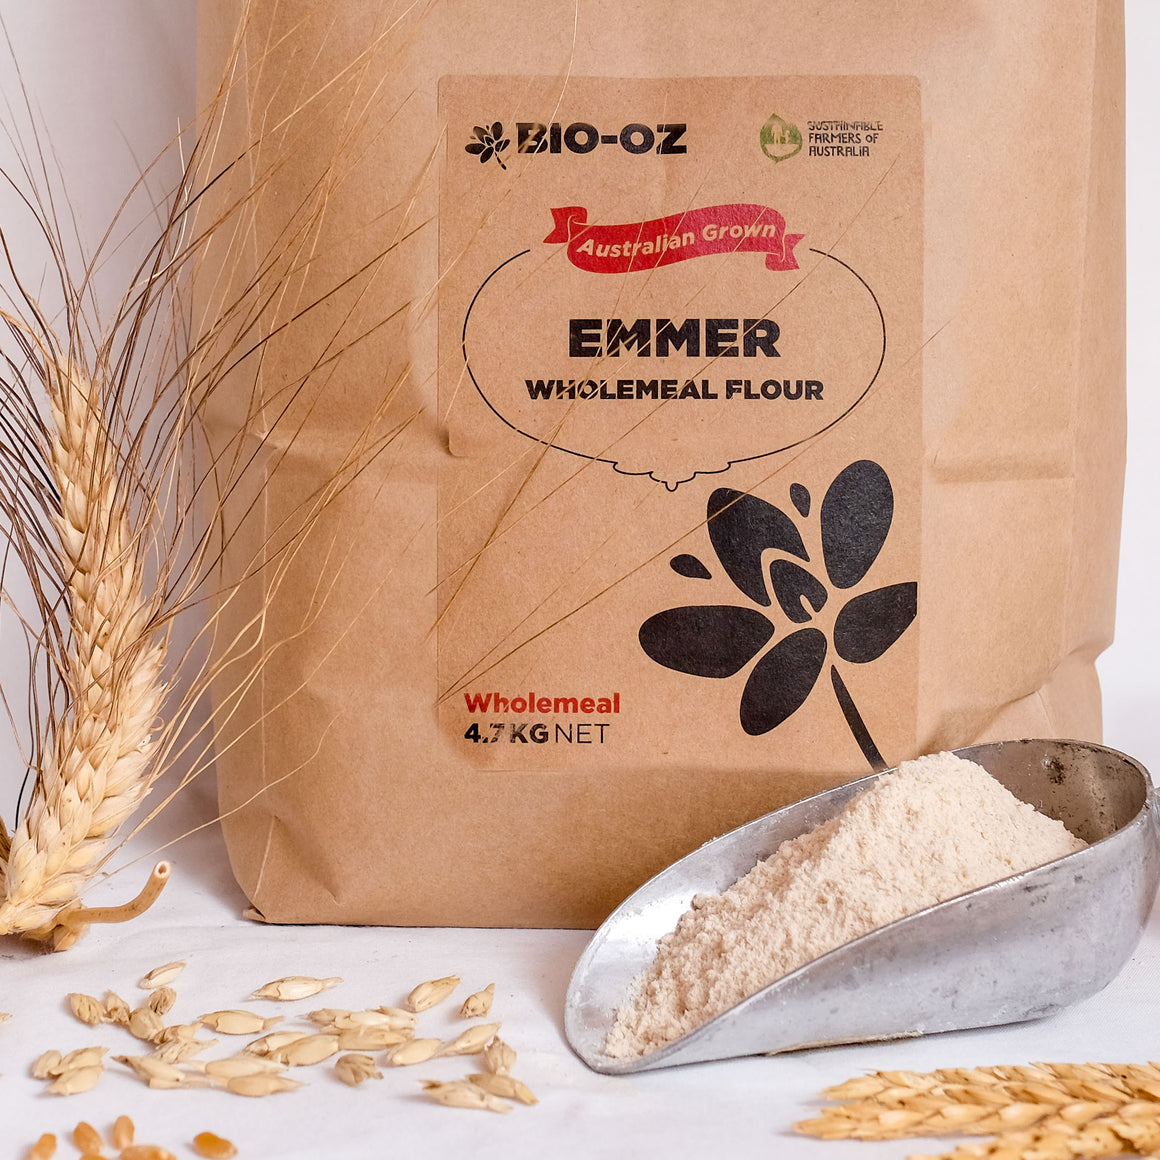 Bio-Oz Emmer WHOLEMEAL Flour 4.7kg Australian grown